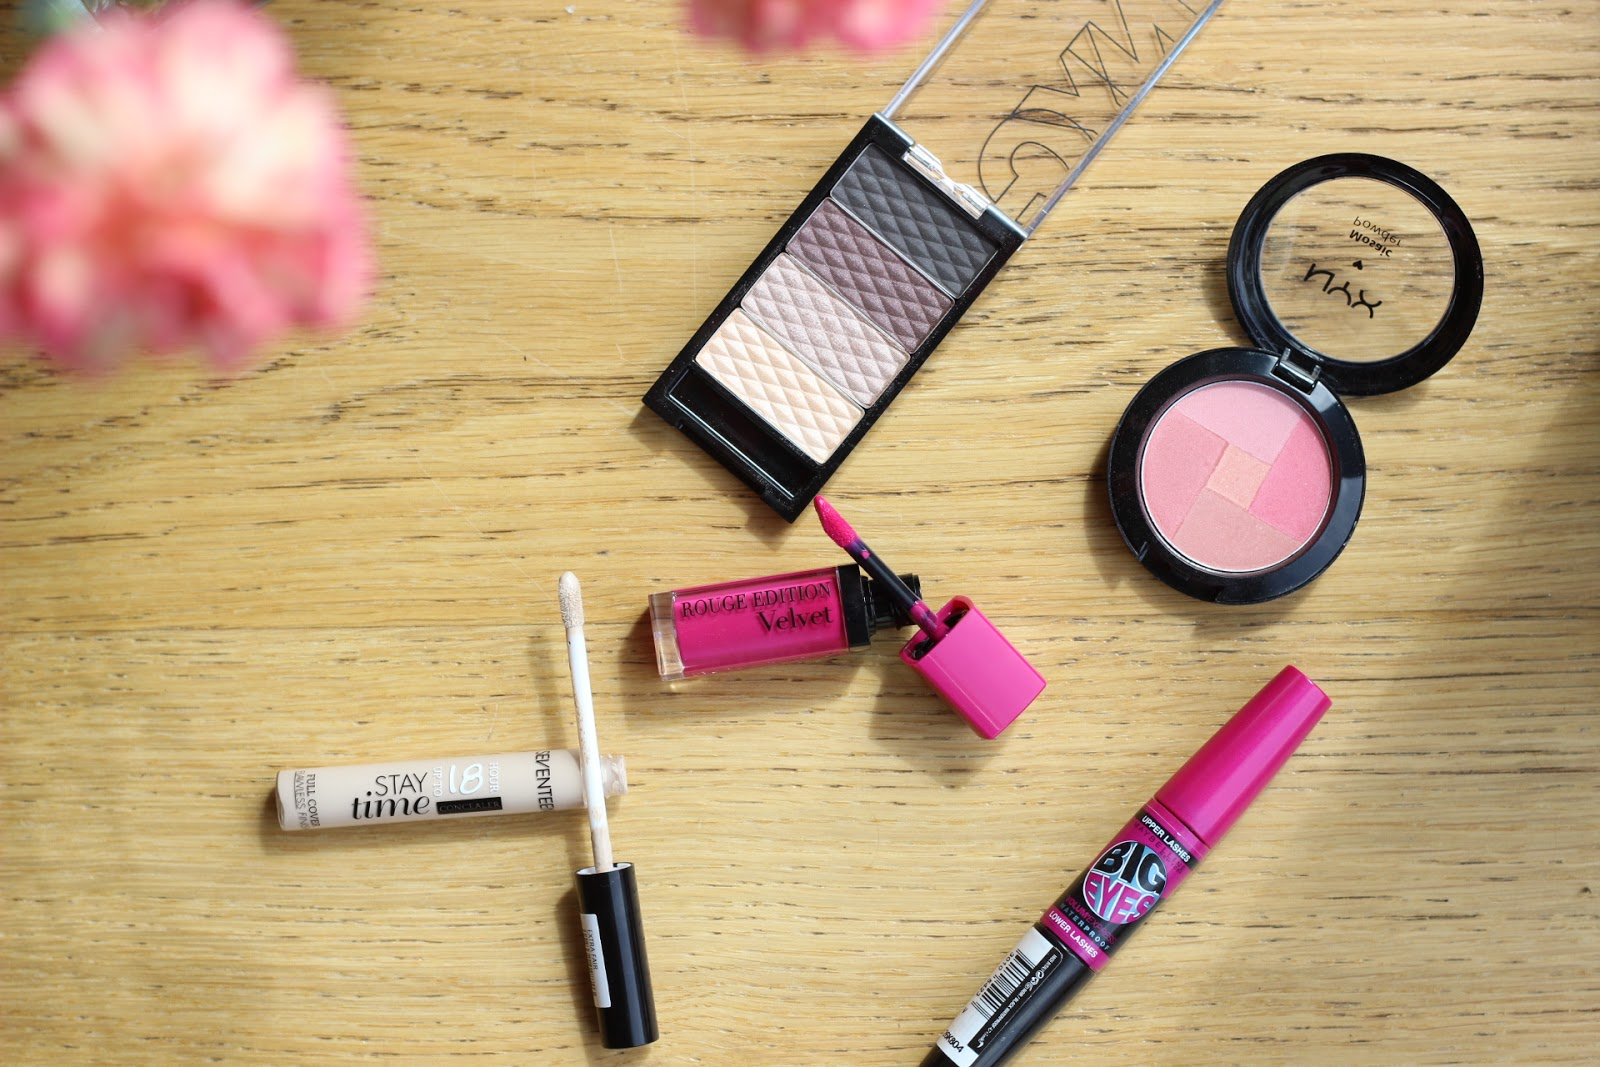 budget makeup, maybelline, bourjois